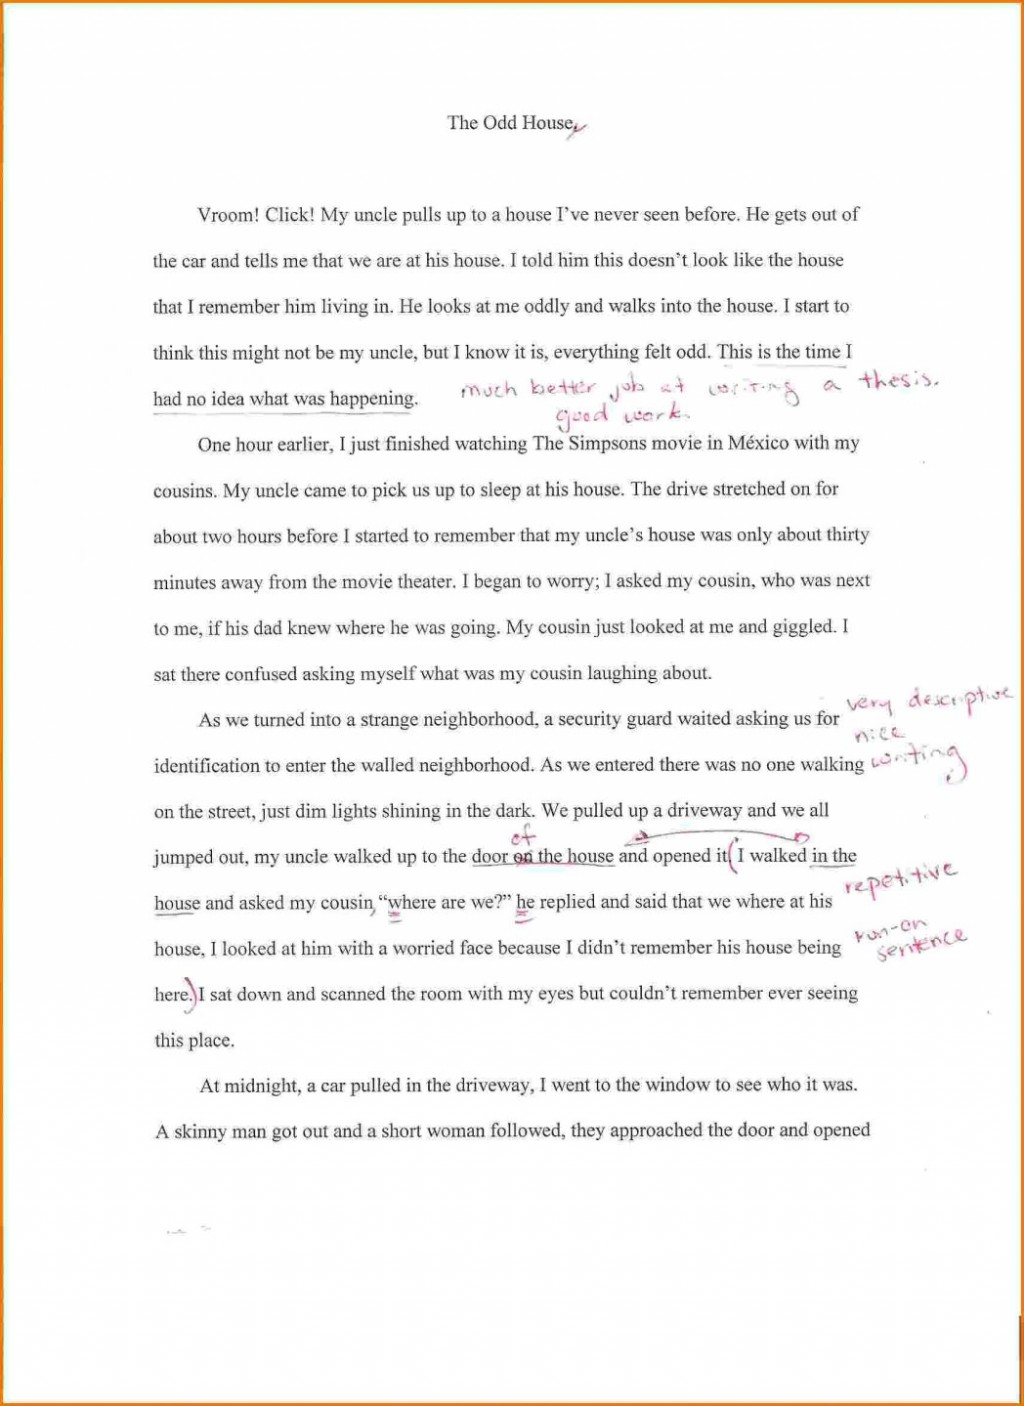 005 Essay On Family Example Gxart Background Autobiographysamp College Examples Personal Information Cultural Macalester 1048x1439 Shocking About History Influence Values First And Foremost Large